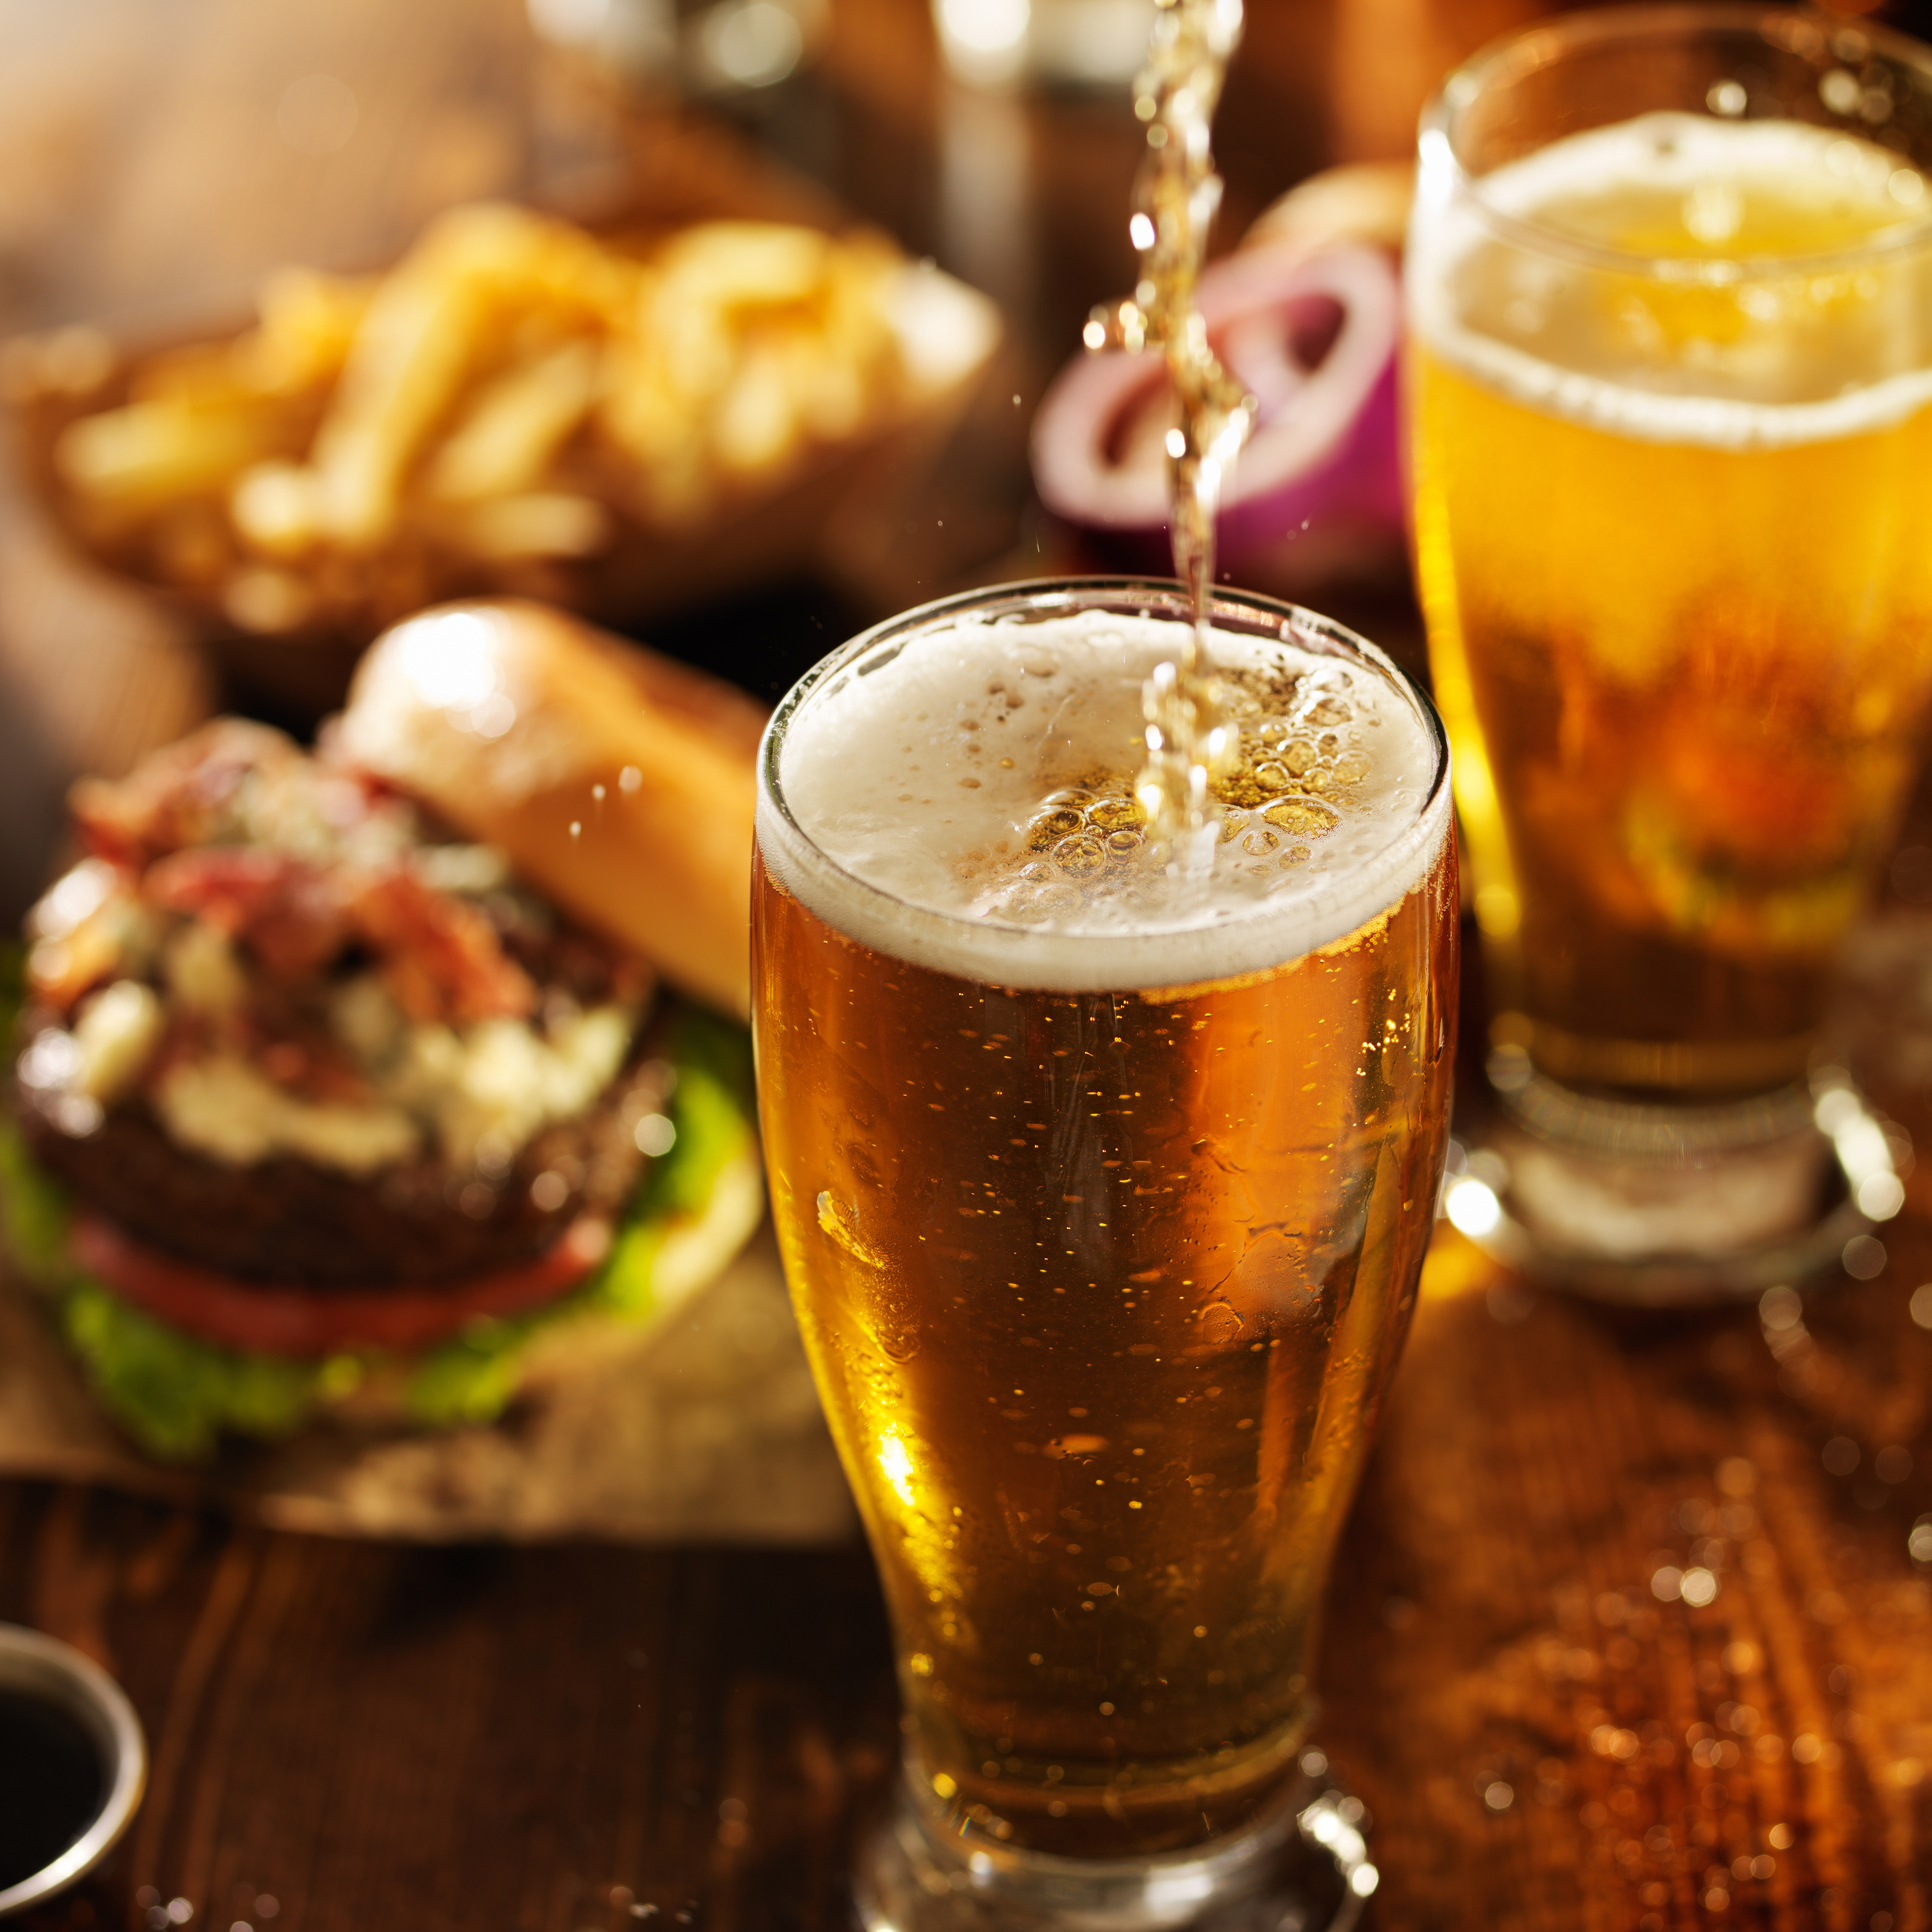 Choose from Over 30 Beer Selections